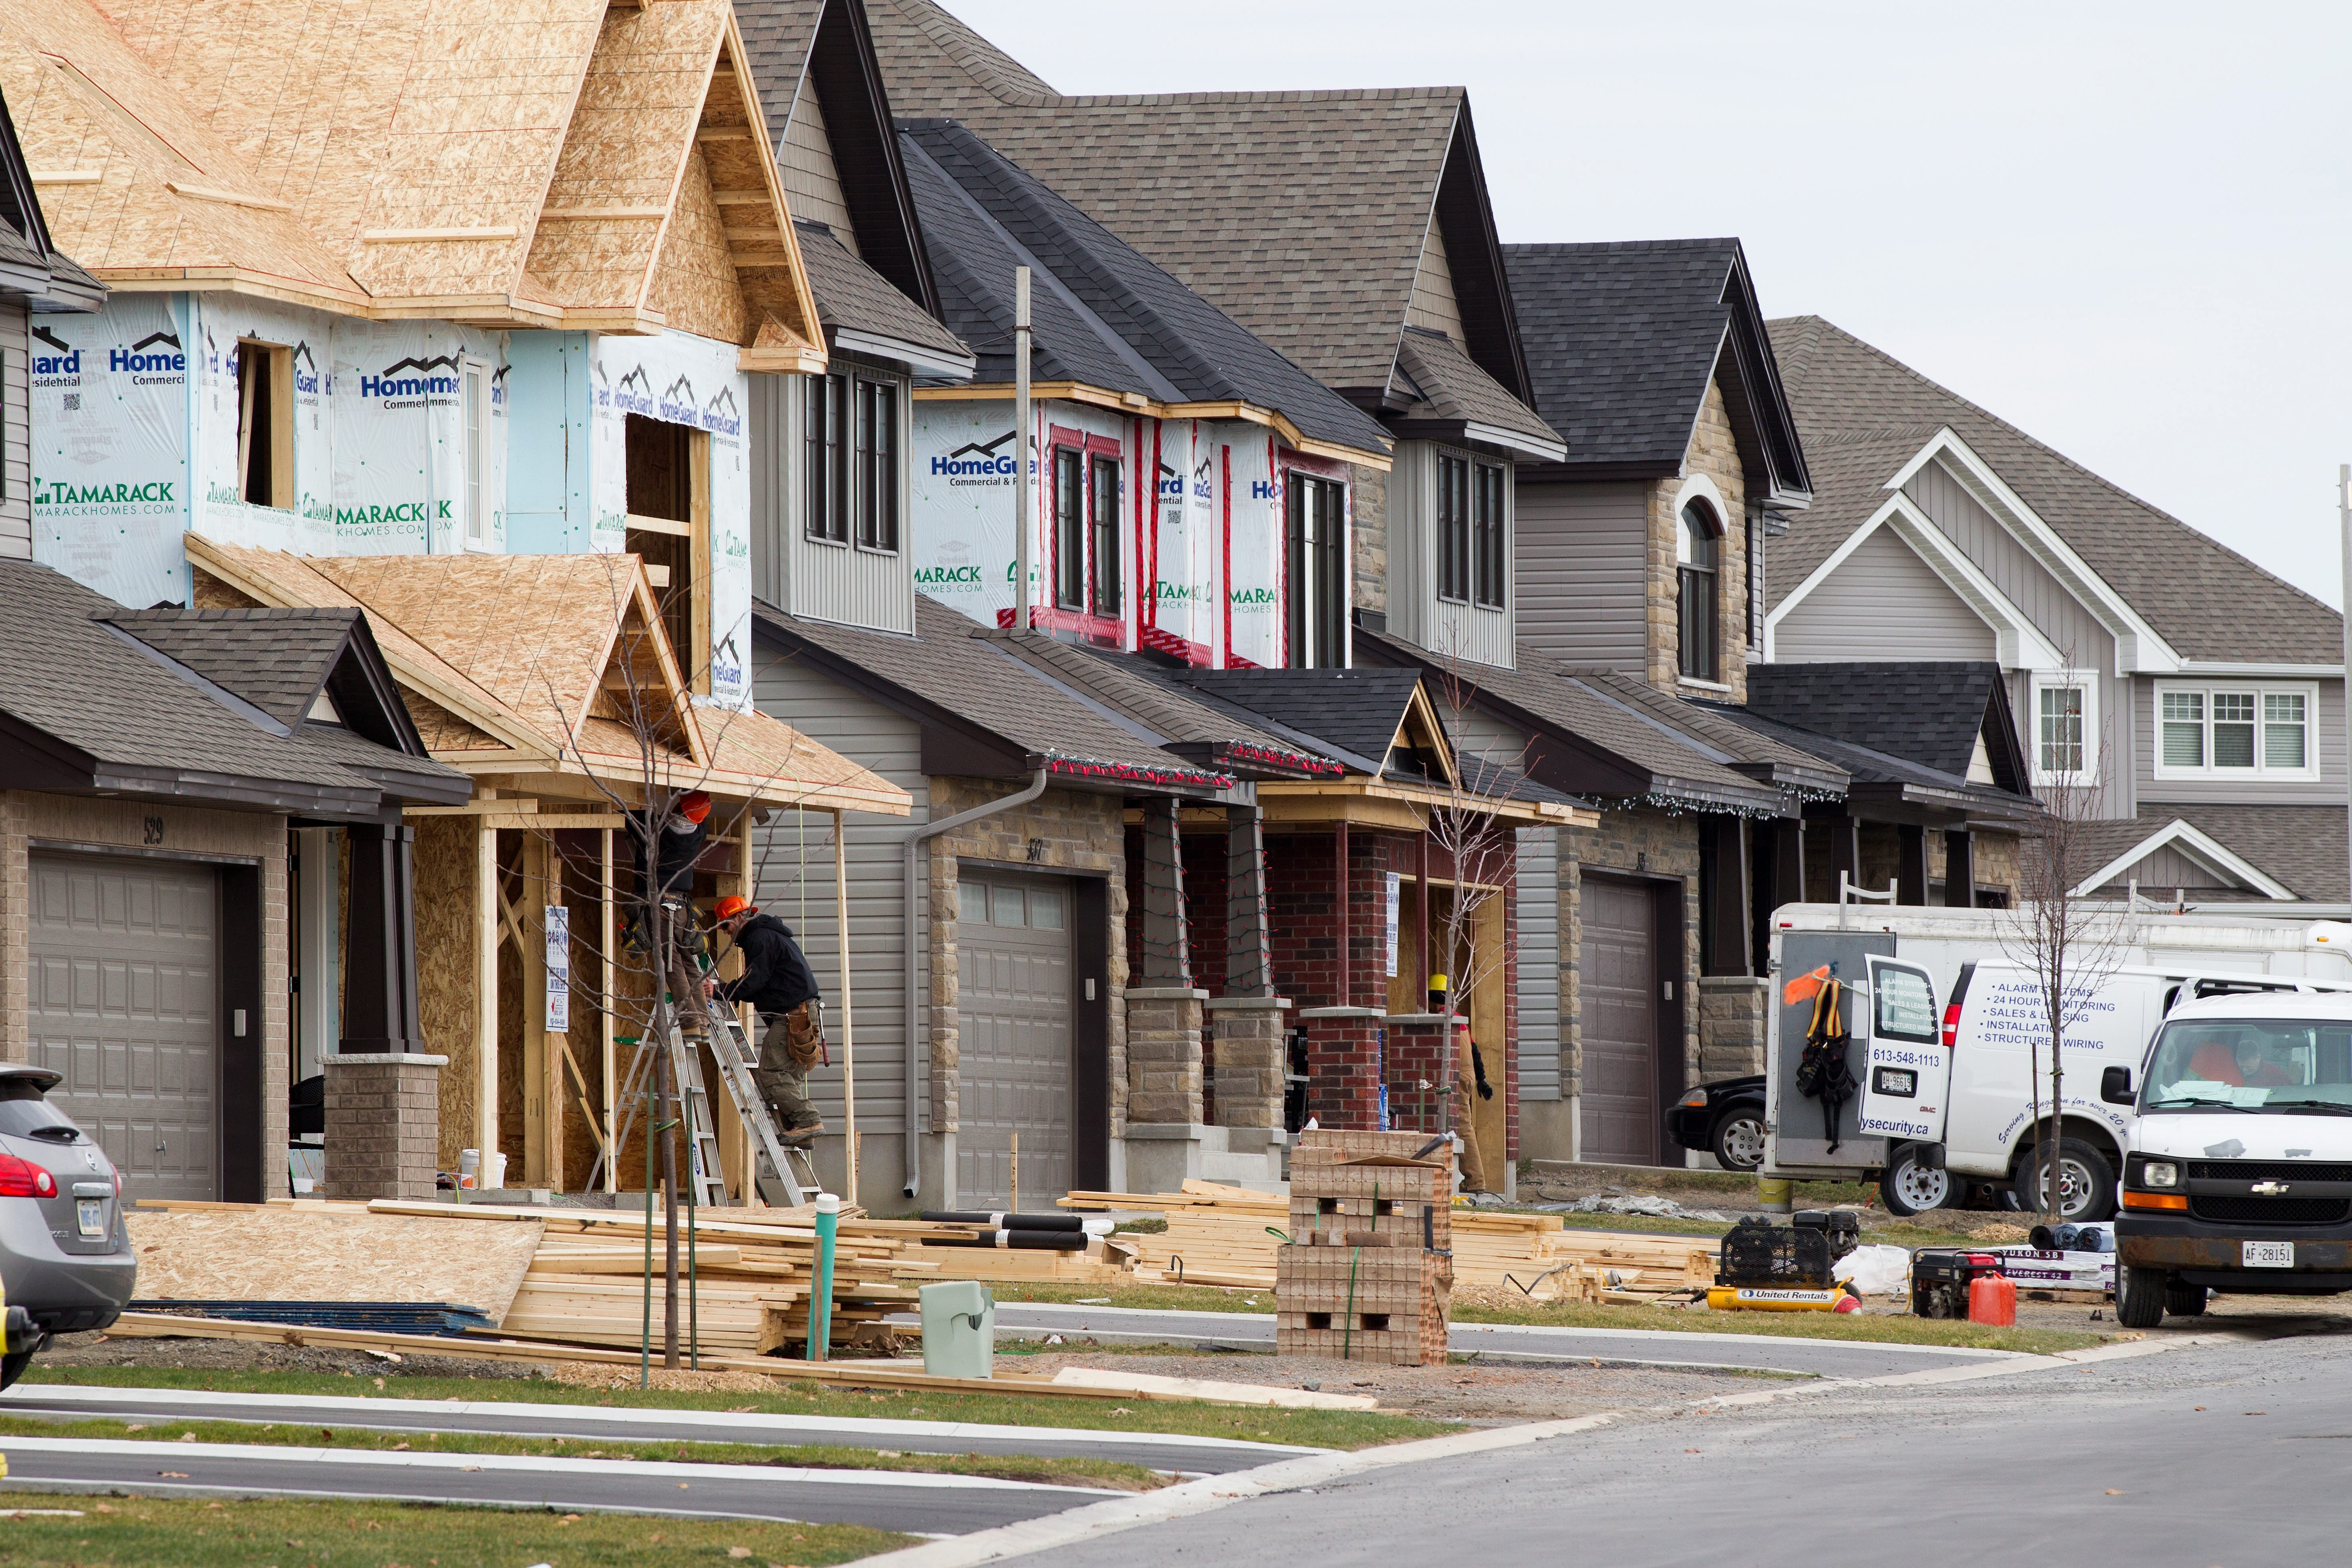 House Wiring Code Canada Forget Moving South These Are Us Home Prices In Canadian Dollars Construction